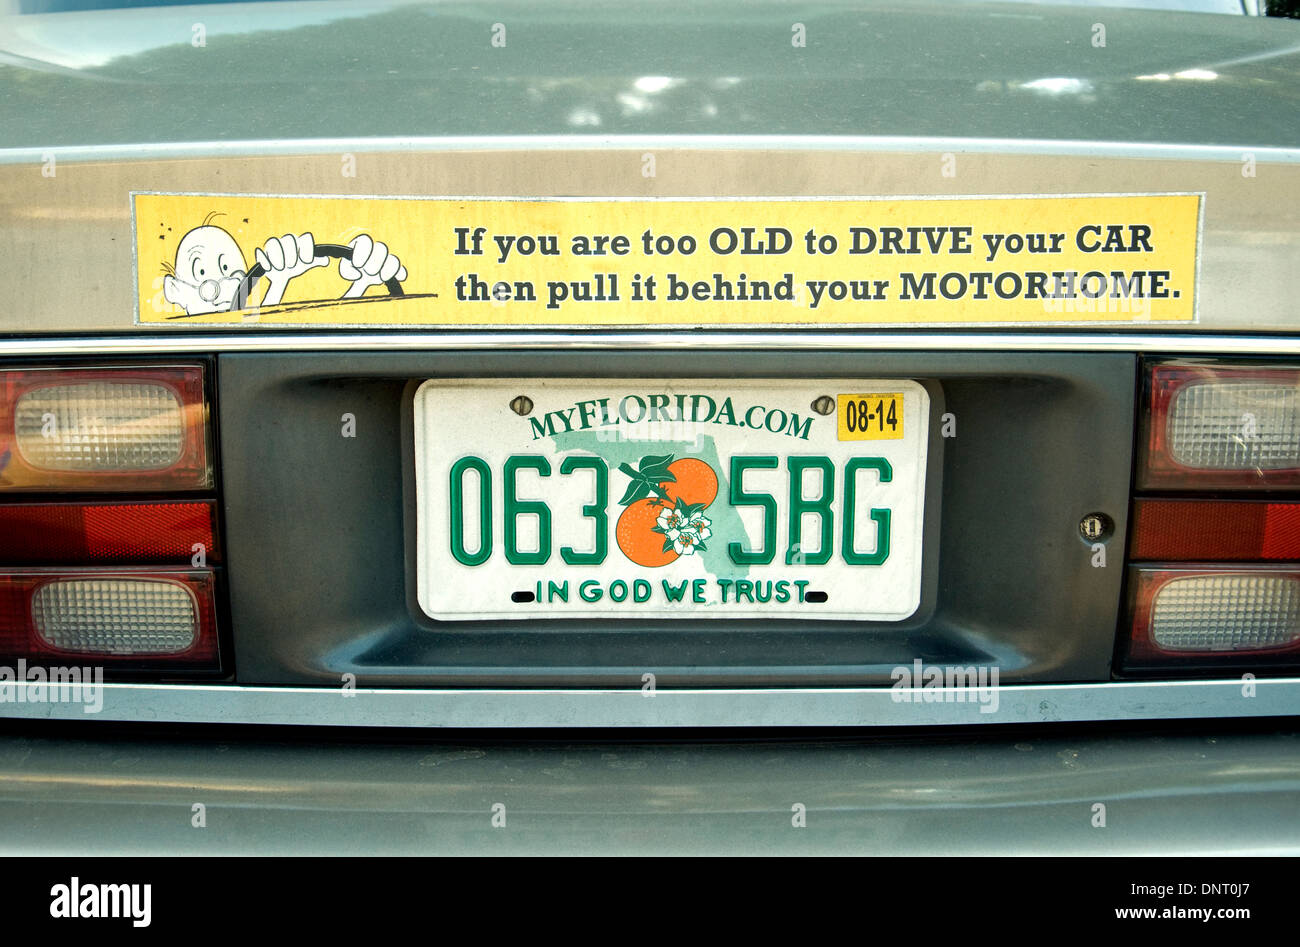 Quirky or humorous licence plates are a common sight on American roads - Stock Image